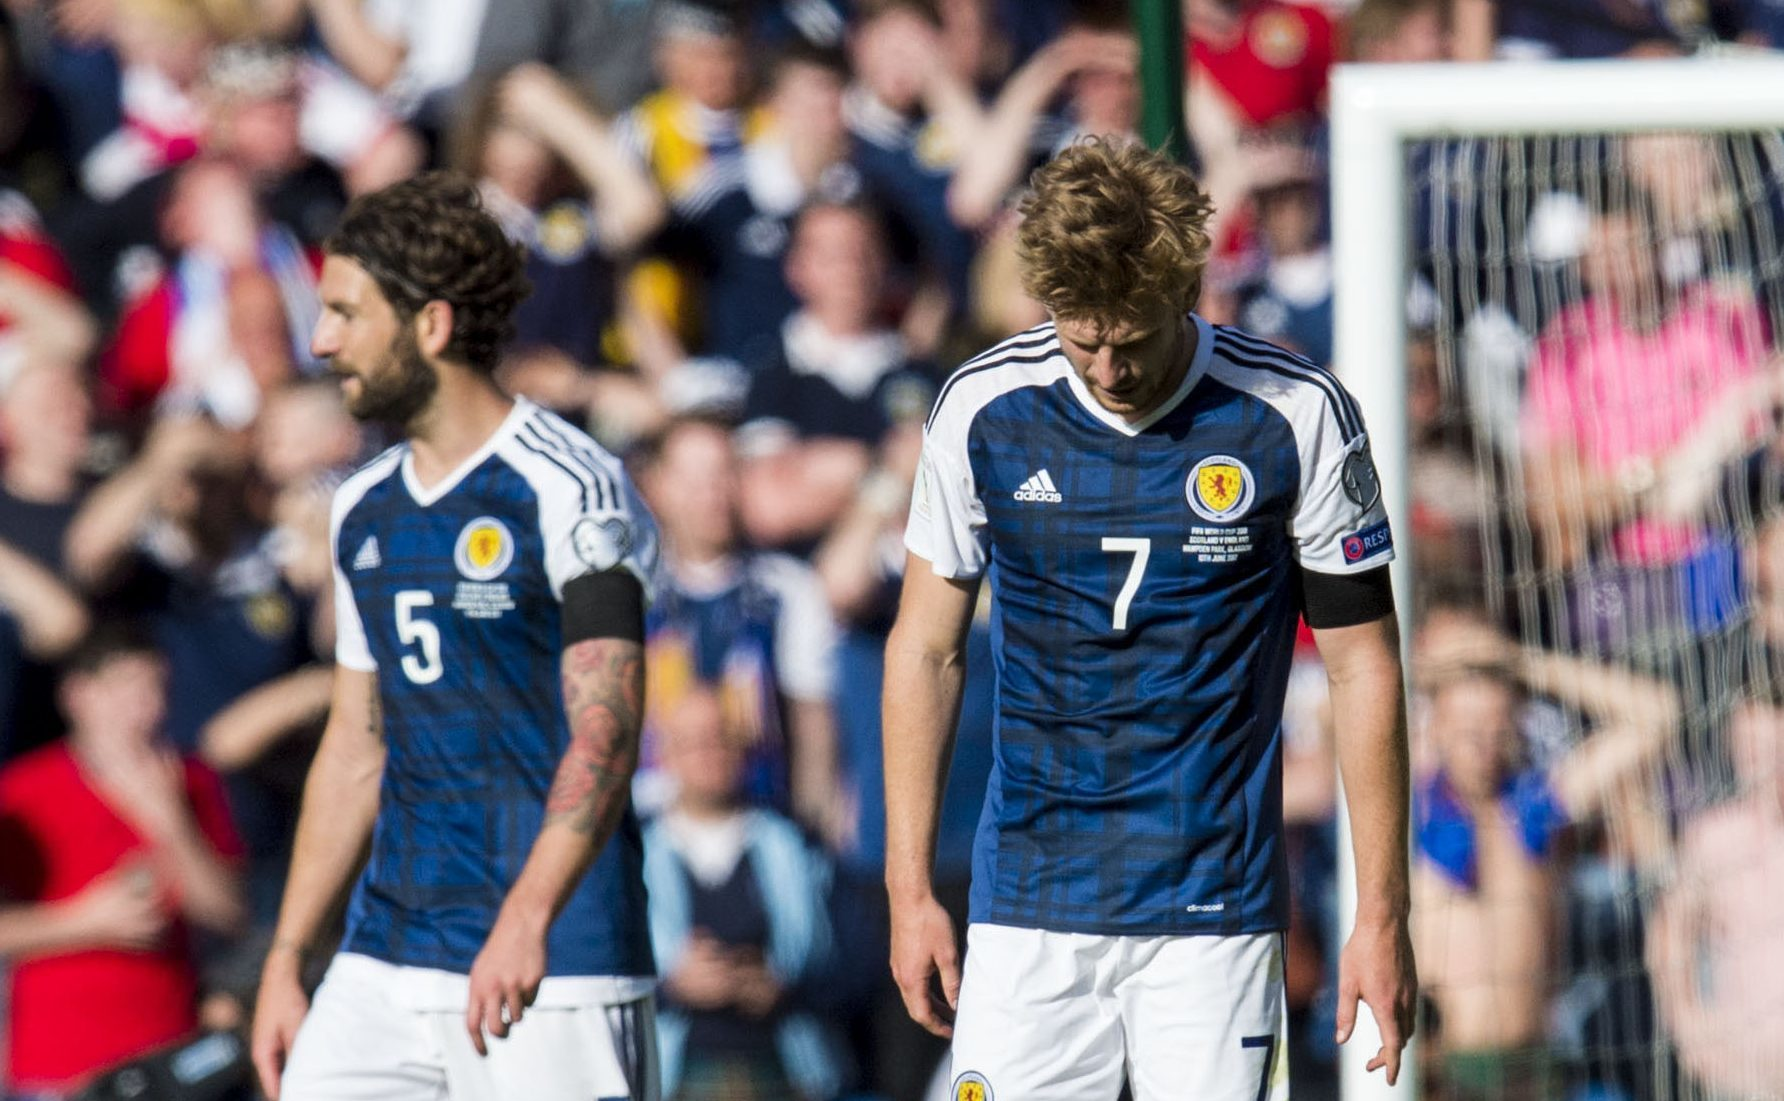 Heads bowed....Scotland after Saturday's football heartbreak.